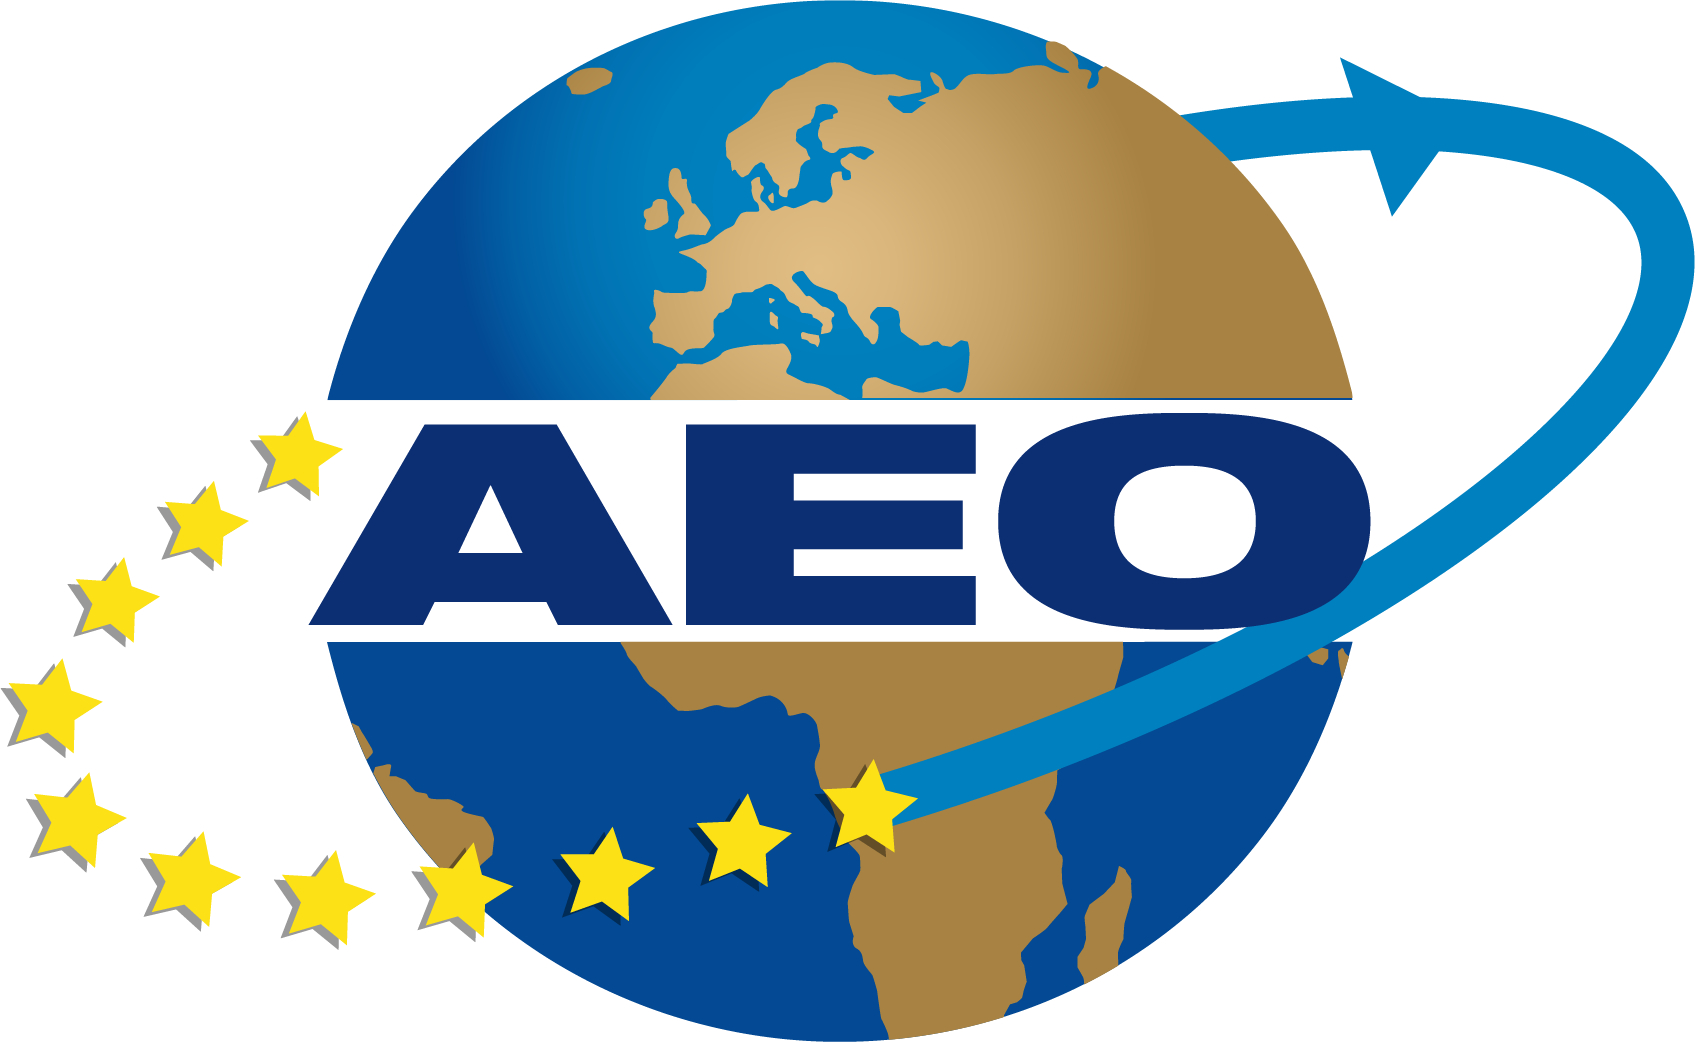 EDMA has been appointed Authorized Economic Operator (AEO).